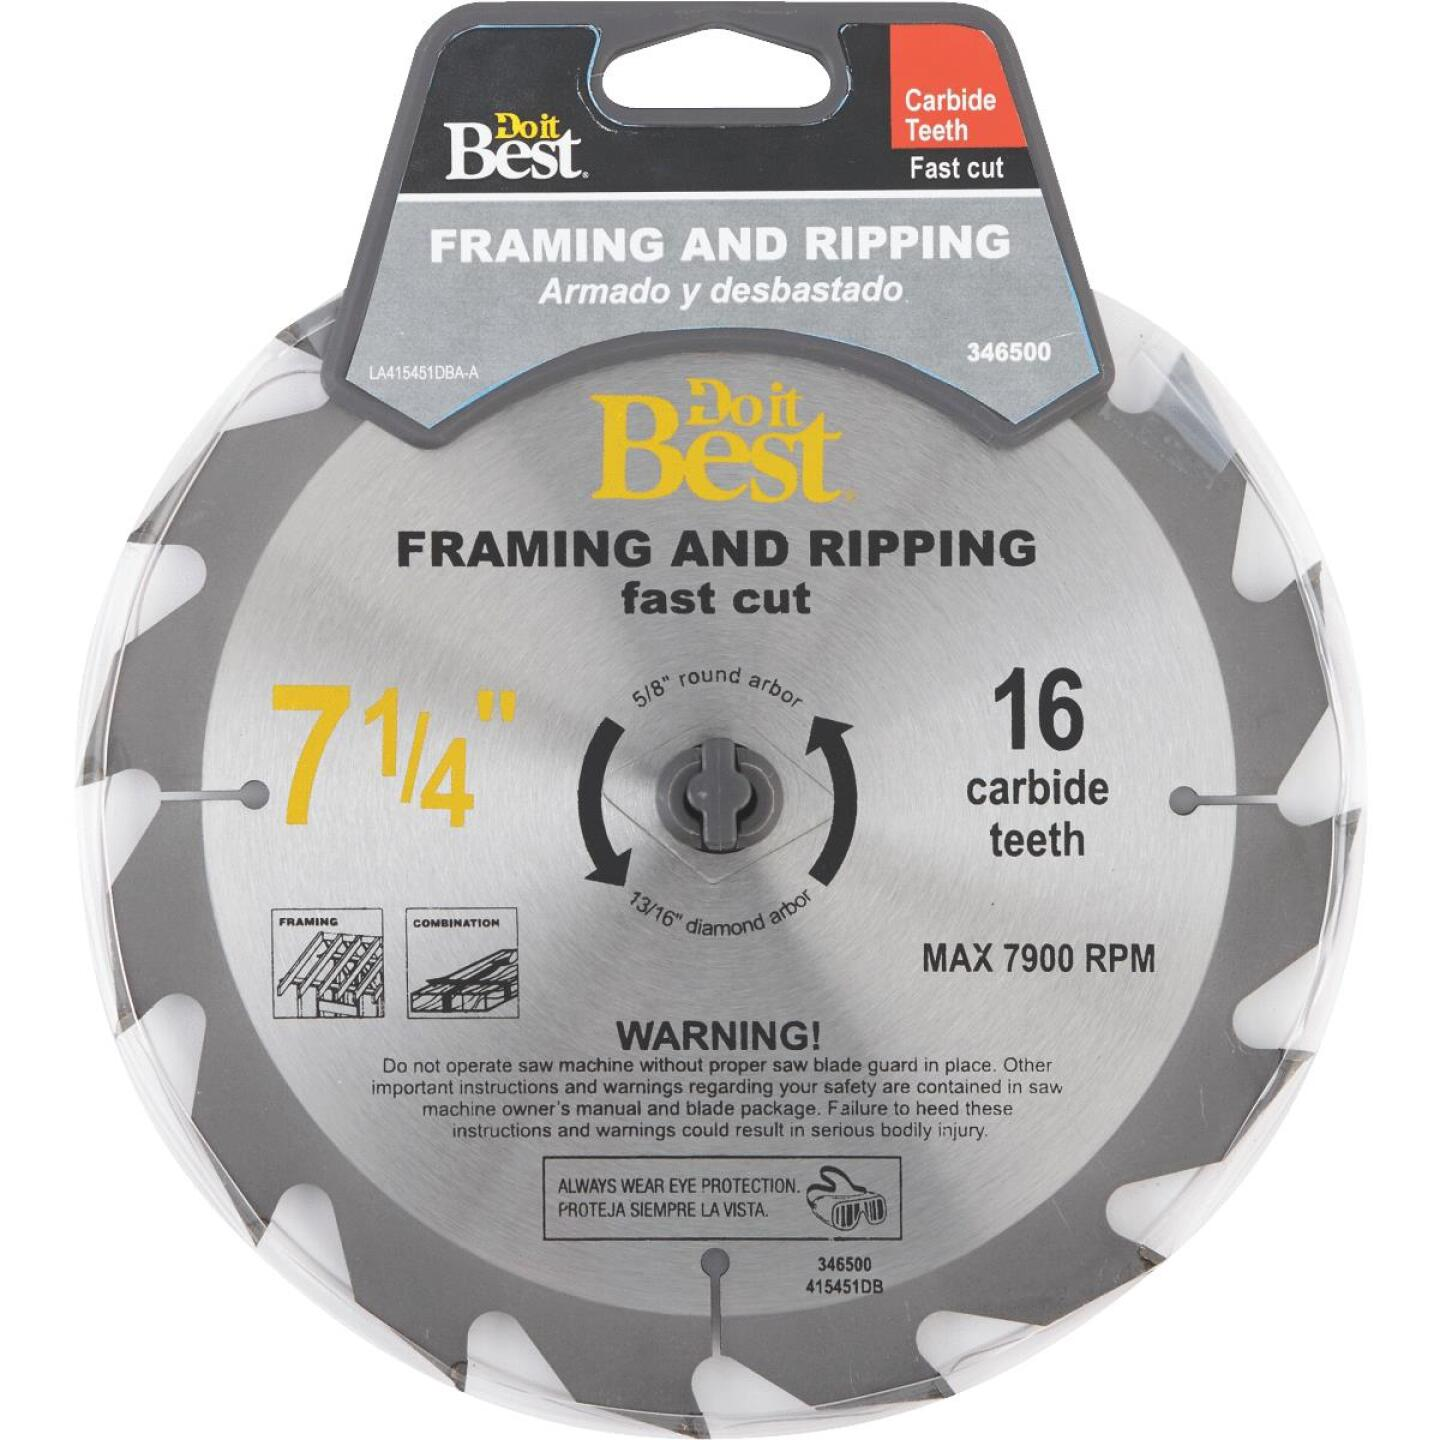 Do it Best 7-1/4 In. 16-Tooth Framing & Ripping Circular Saw Blade Image 1